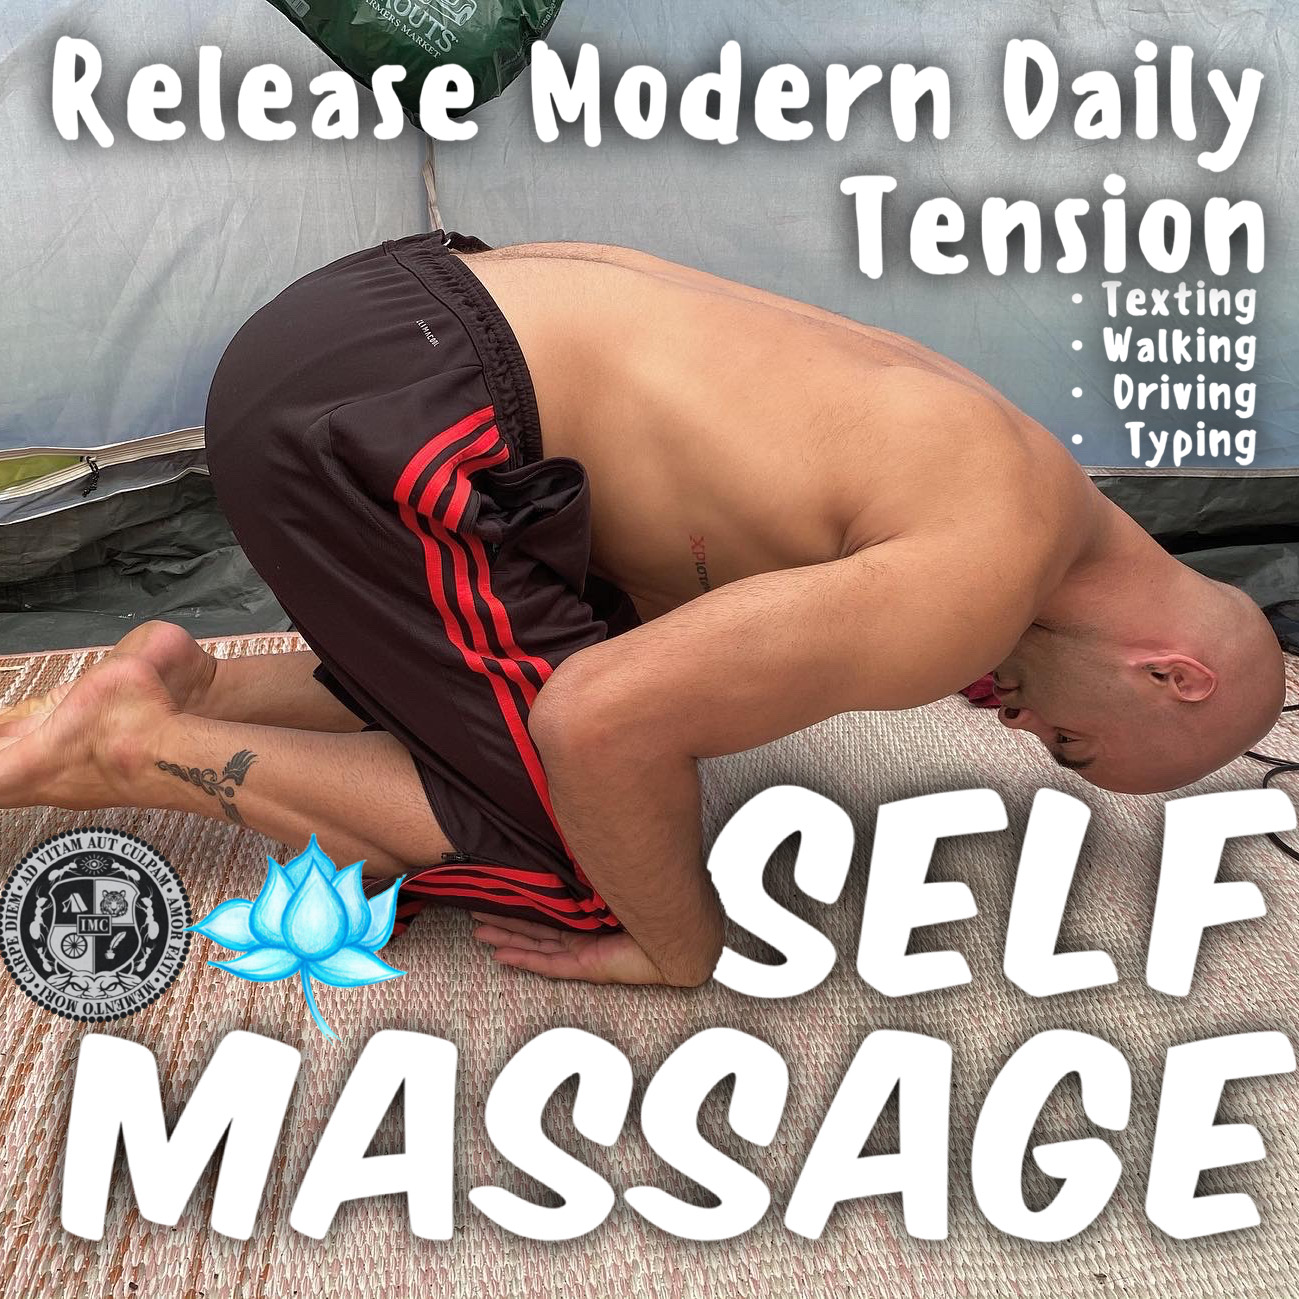 RELEASE NERVES & MUSCLES